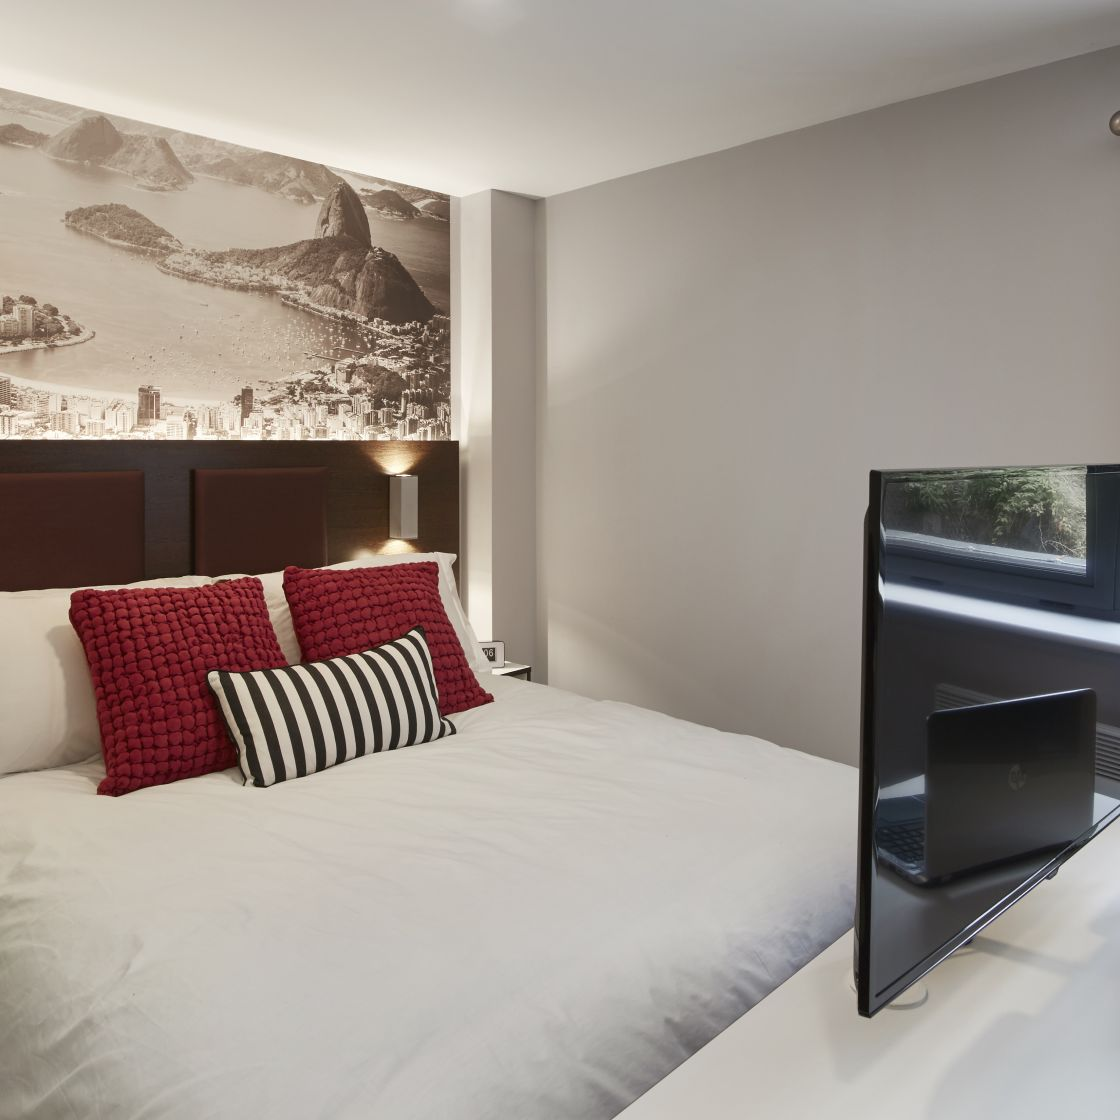 Elegance Student Apartment in Leeds with King Size Bed and Flat screen TV. IconInc, The Edge